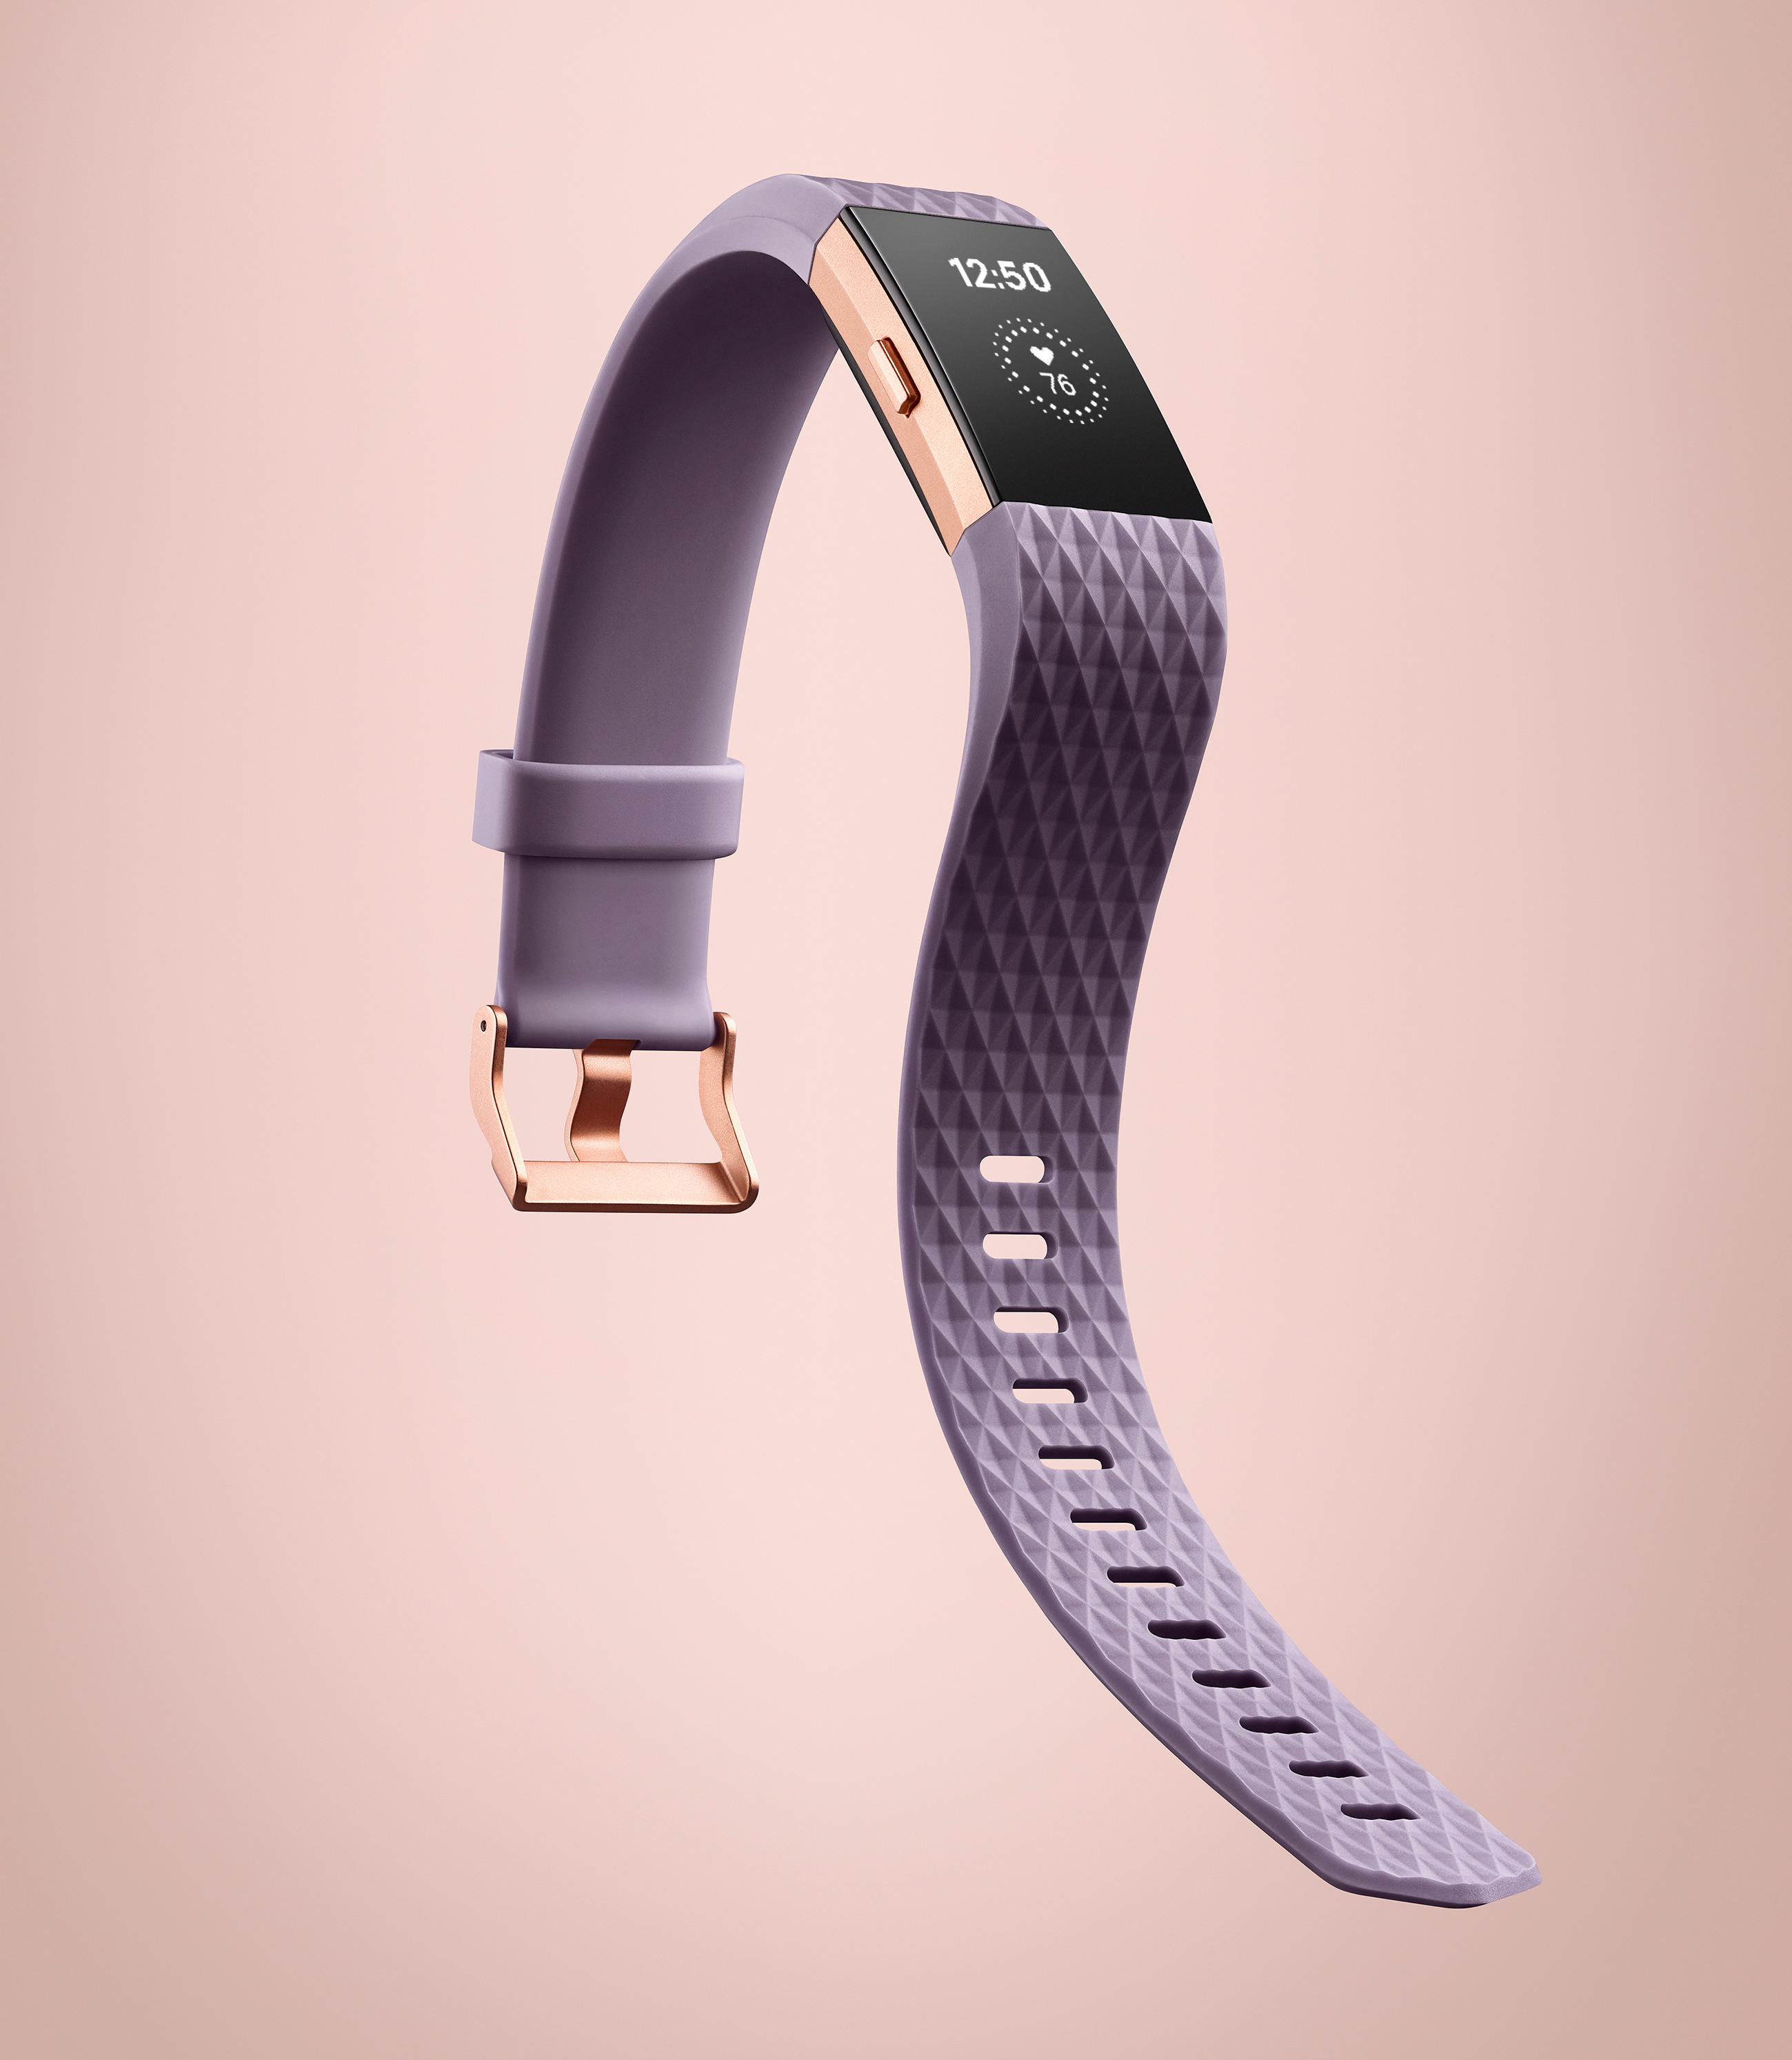 Product Design: Fitbit Charge 2 by Dan Clifton